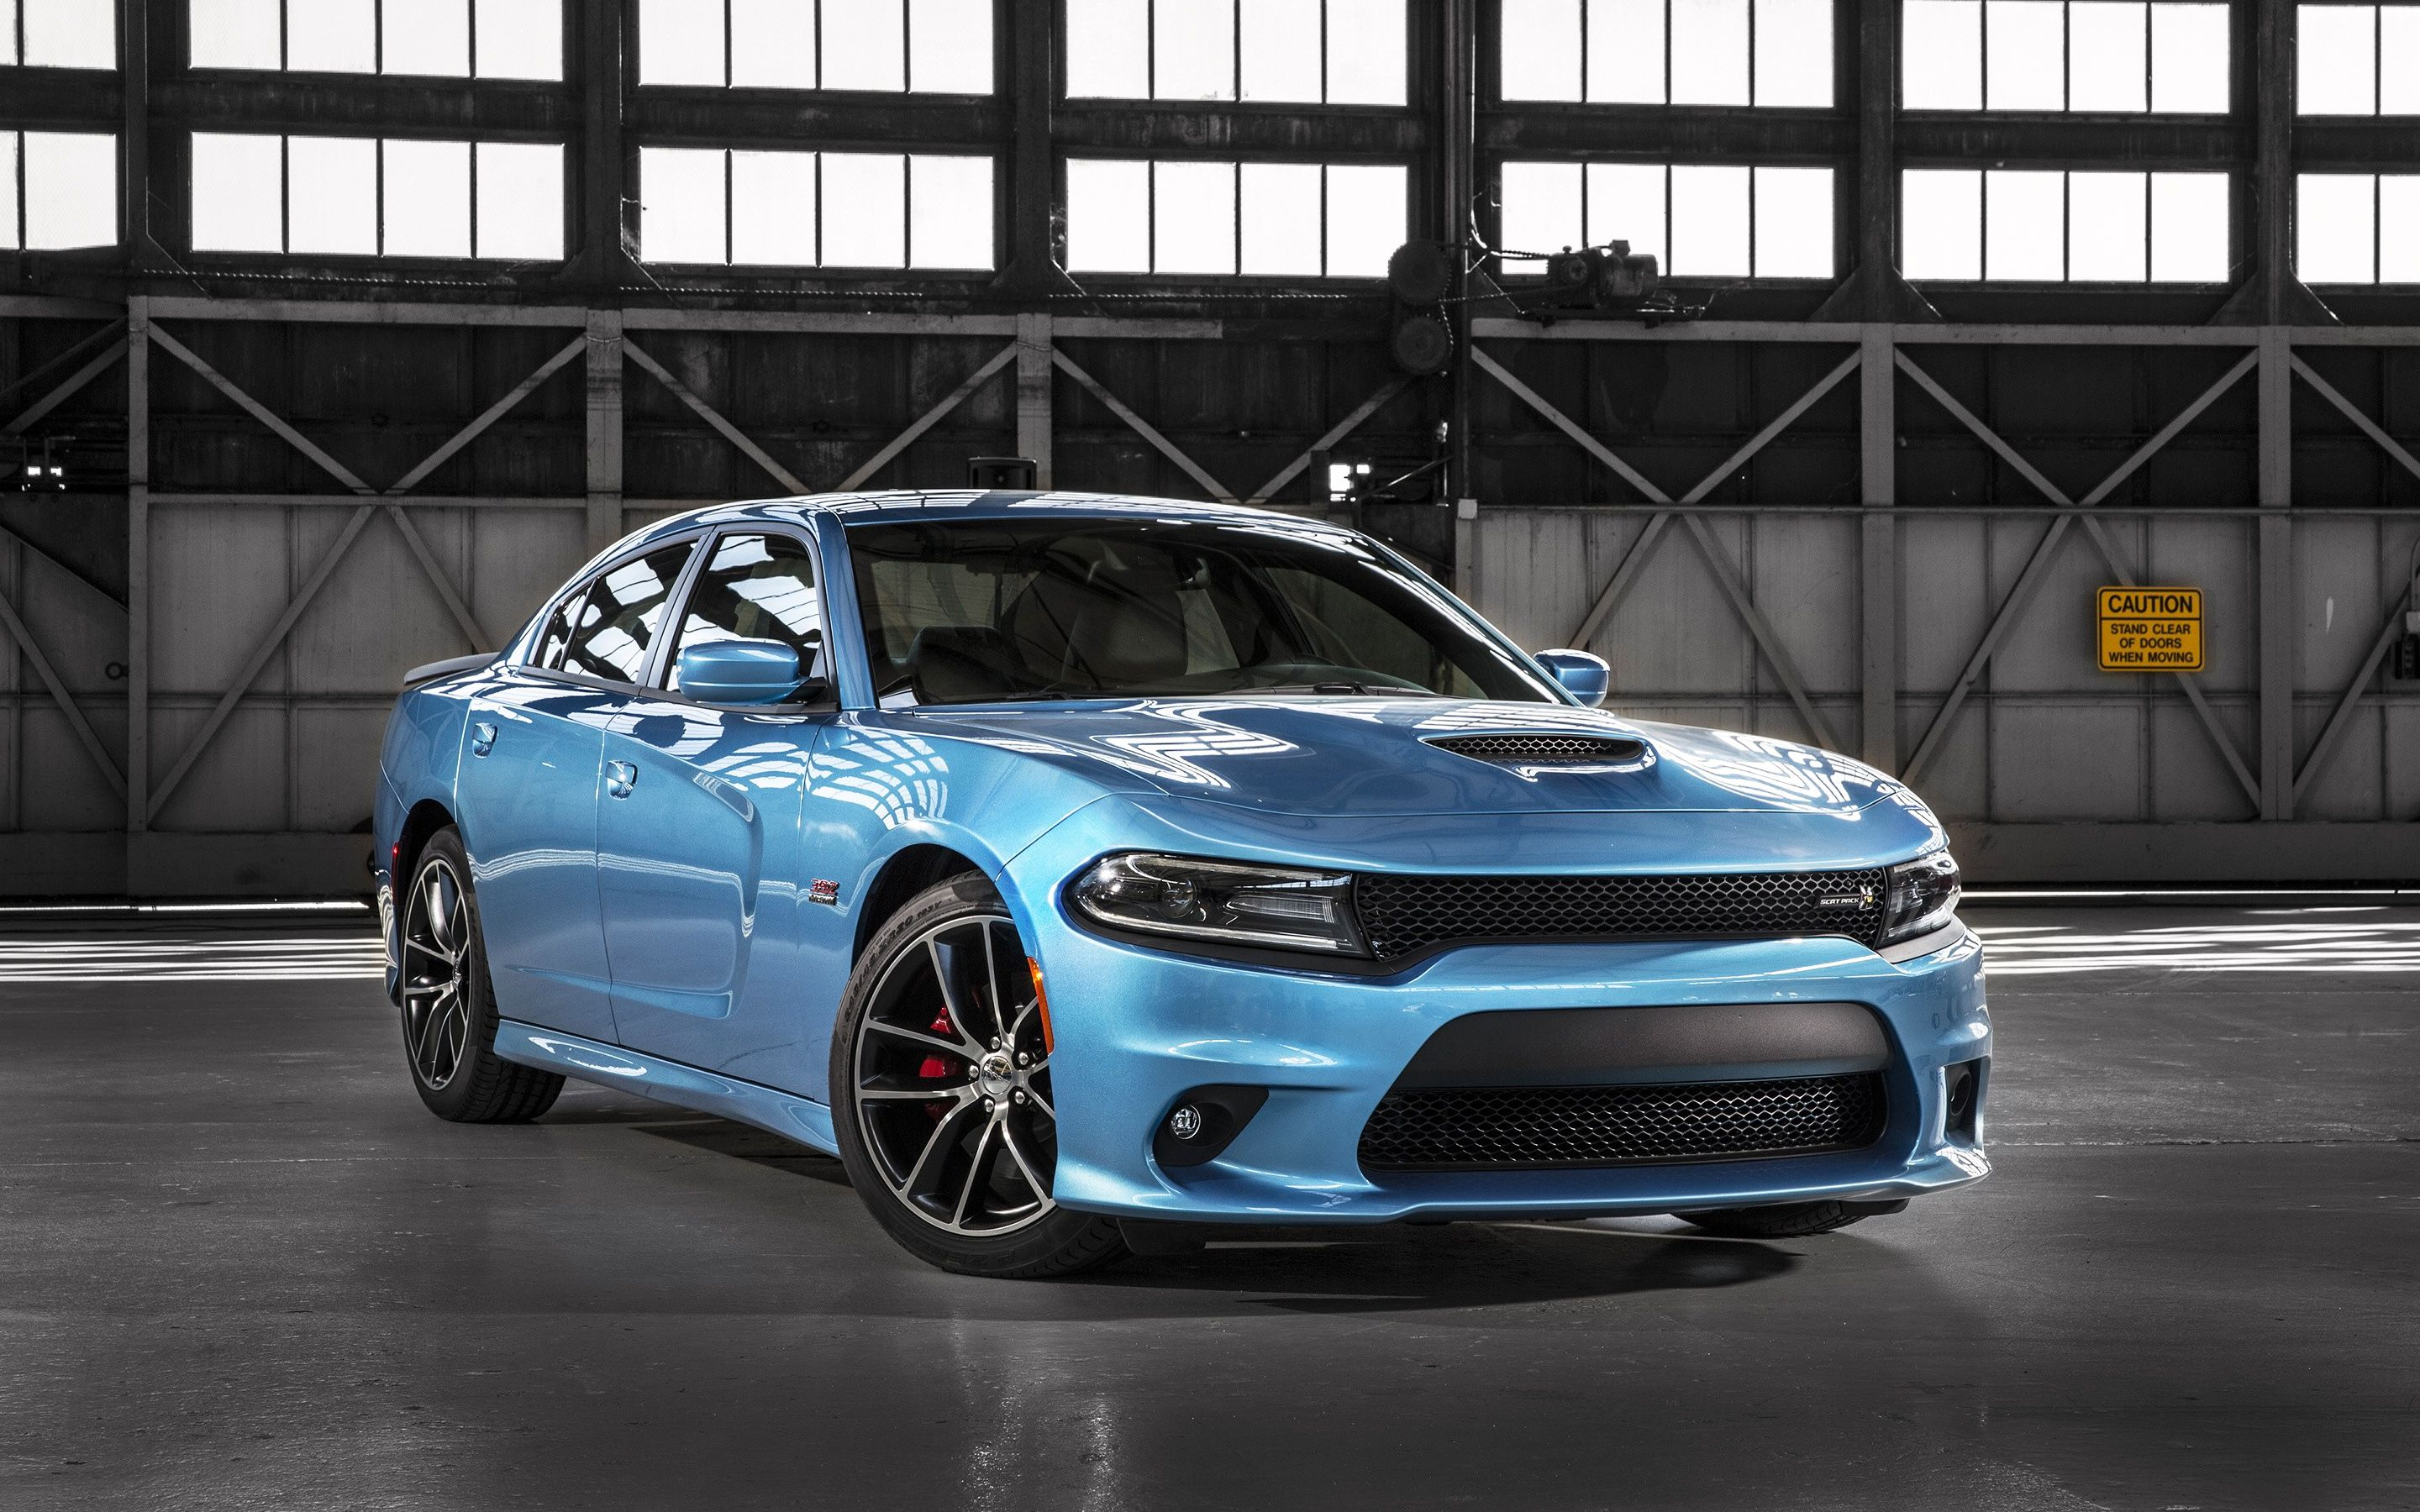 2015 dodge charger is now part of the r t scat pack together with its sibling the challenger adding r t scat pack means that the car will receive srt ma